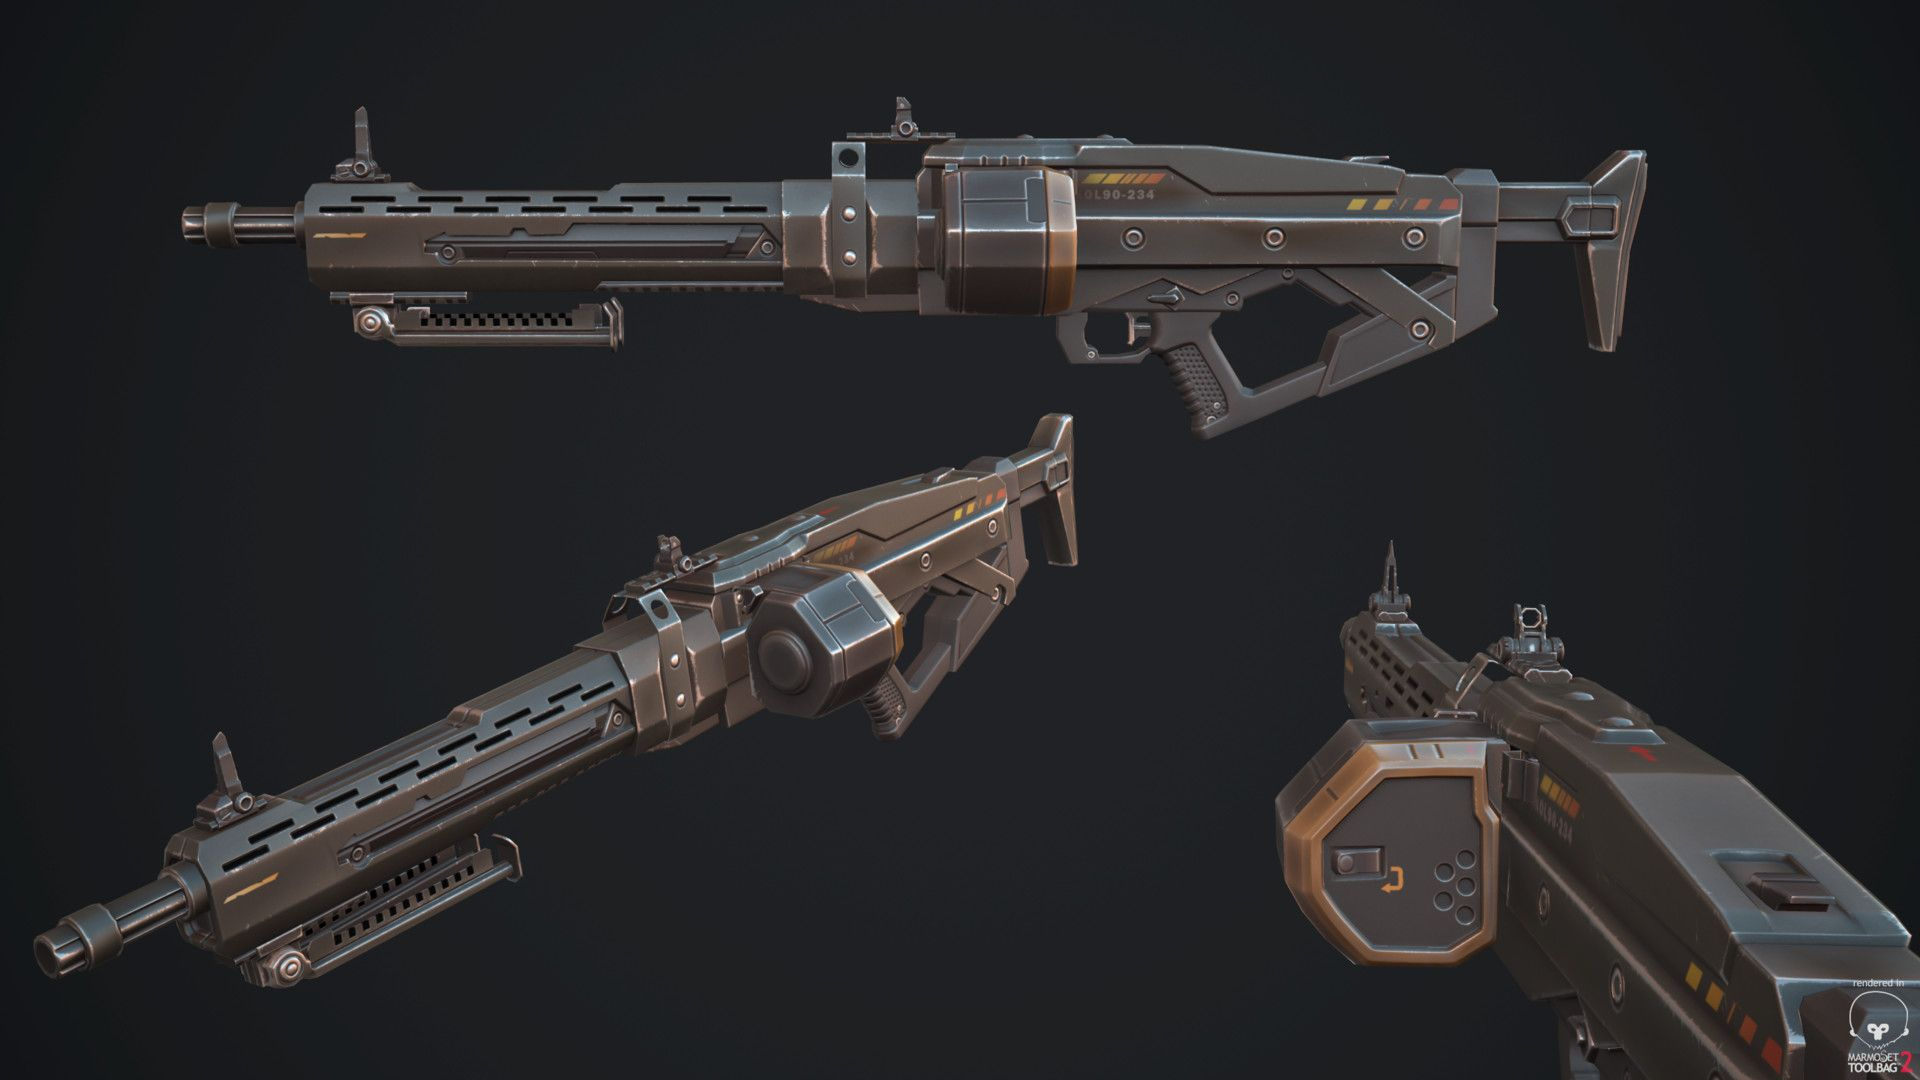 Pin On Weapon Design